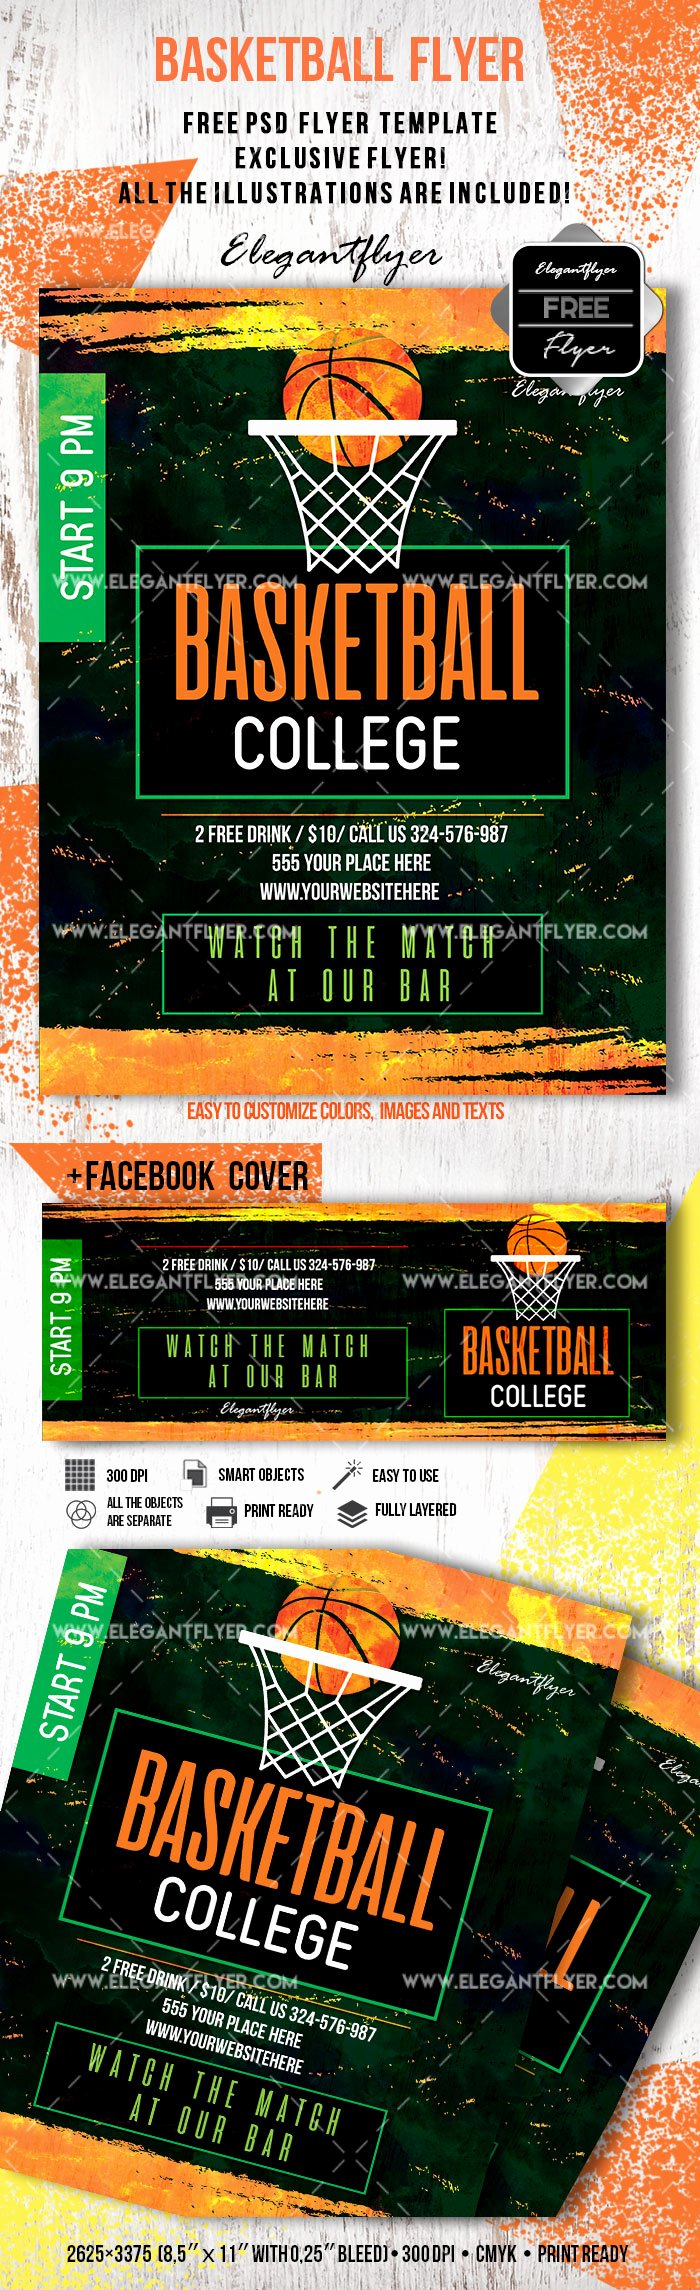 Free Basketball Flyer Template Unique Free Basketball Flyer Template – by Elegantflyer